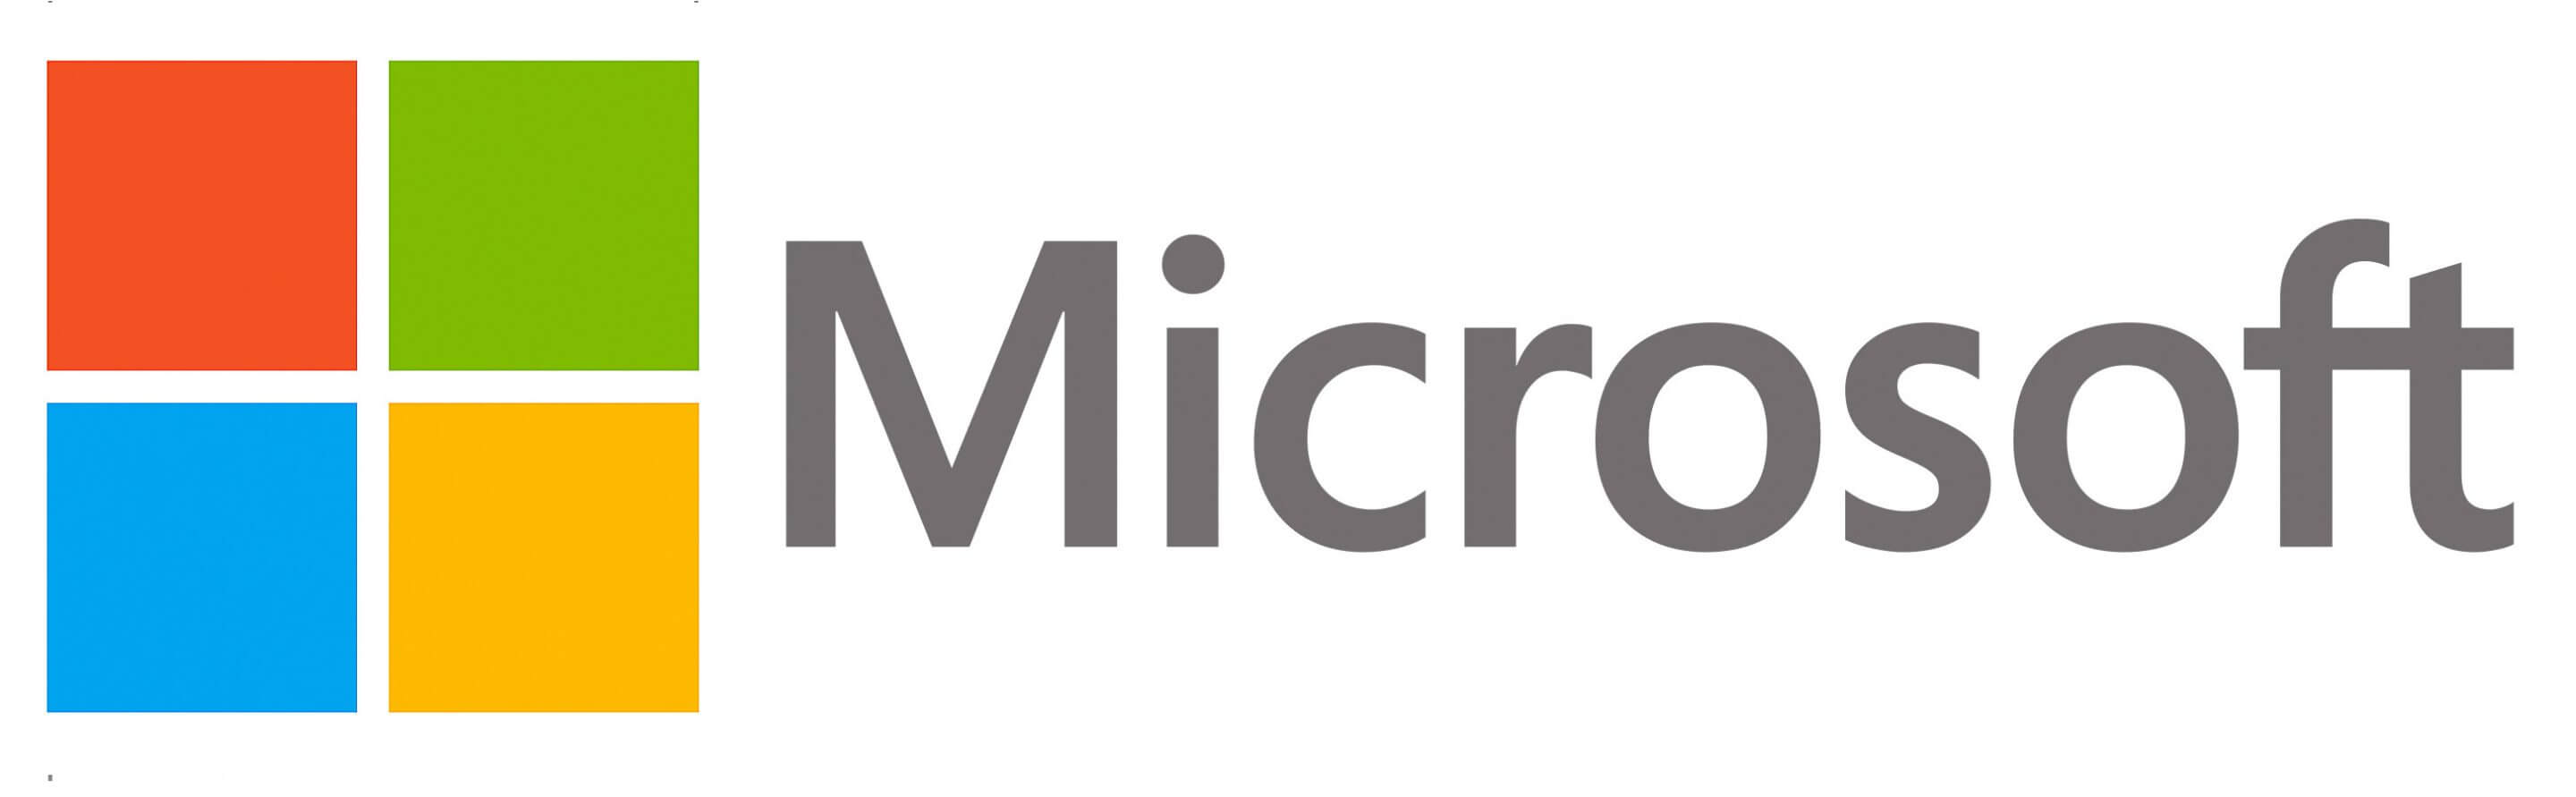 Logo Microsoft, Olenergies - Batteries de stockage lithium LFP - French lithium battery manufacturer